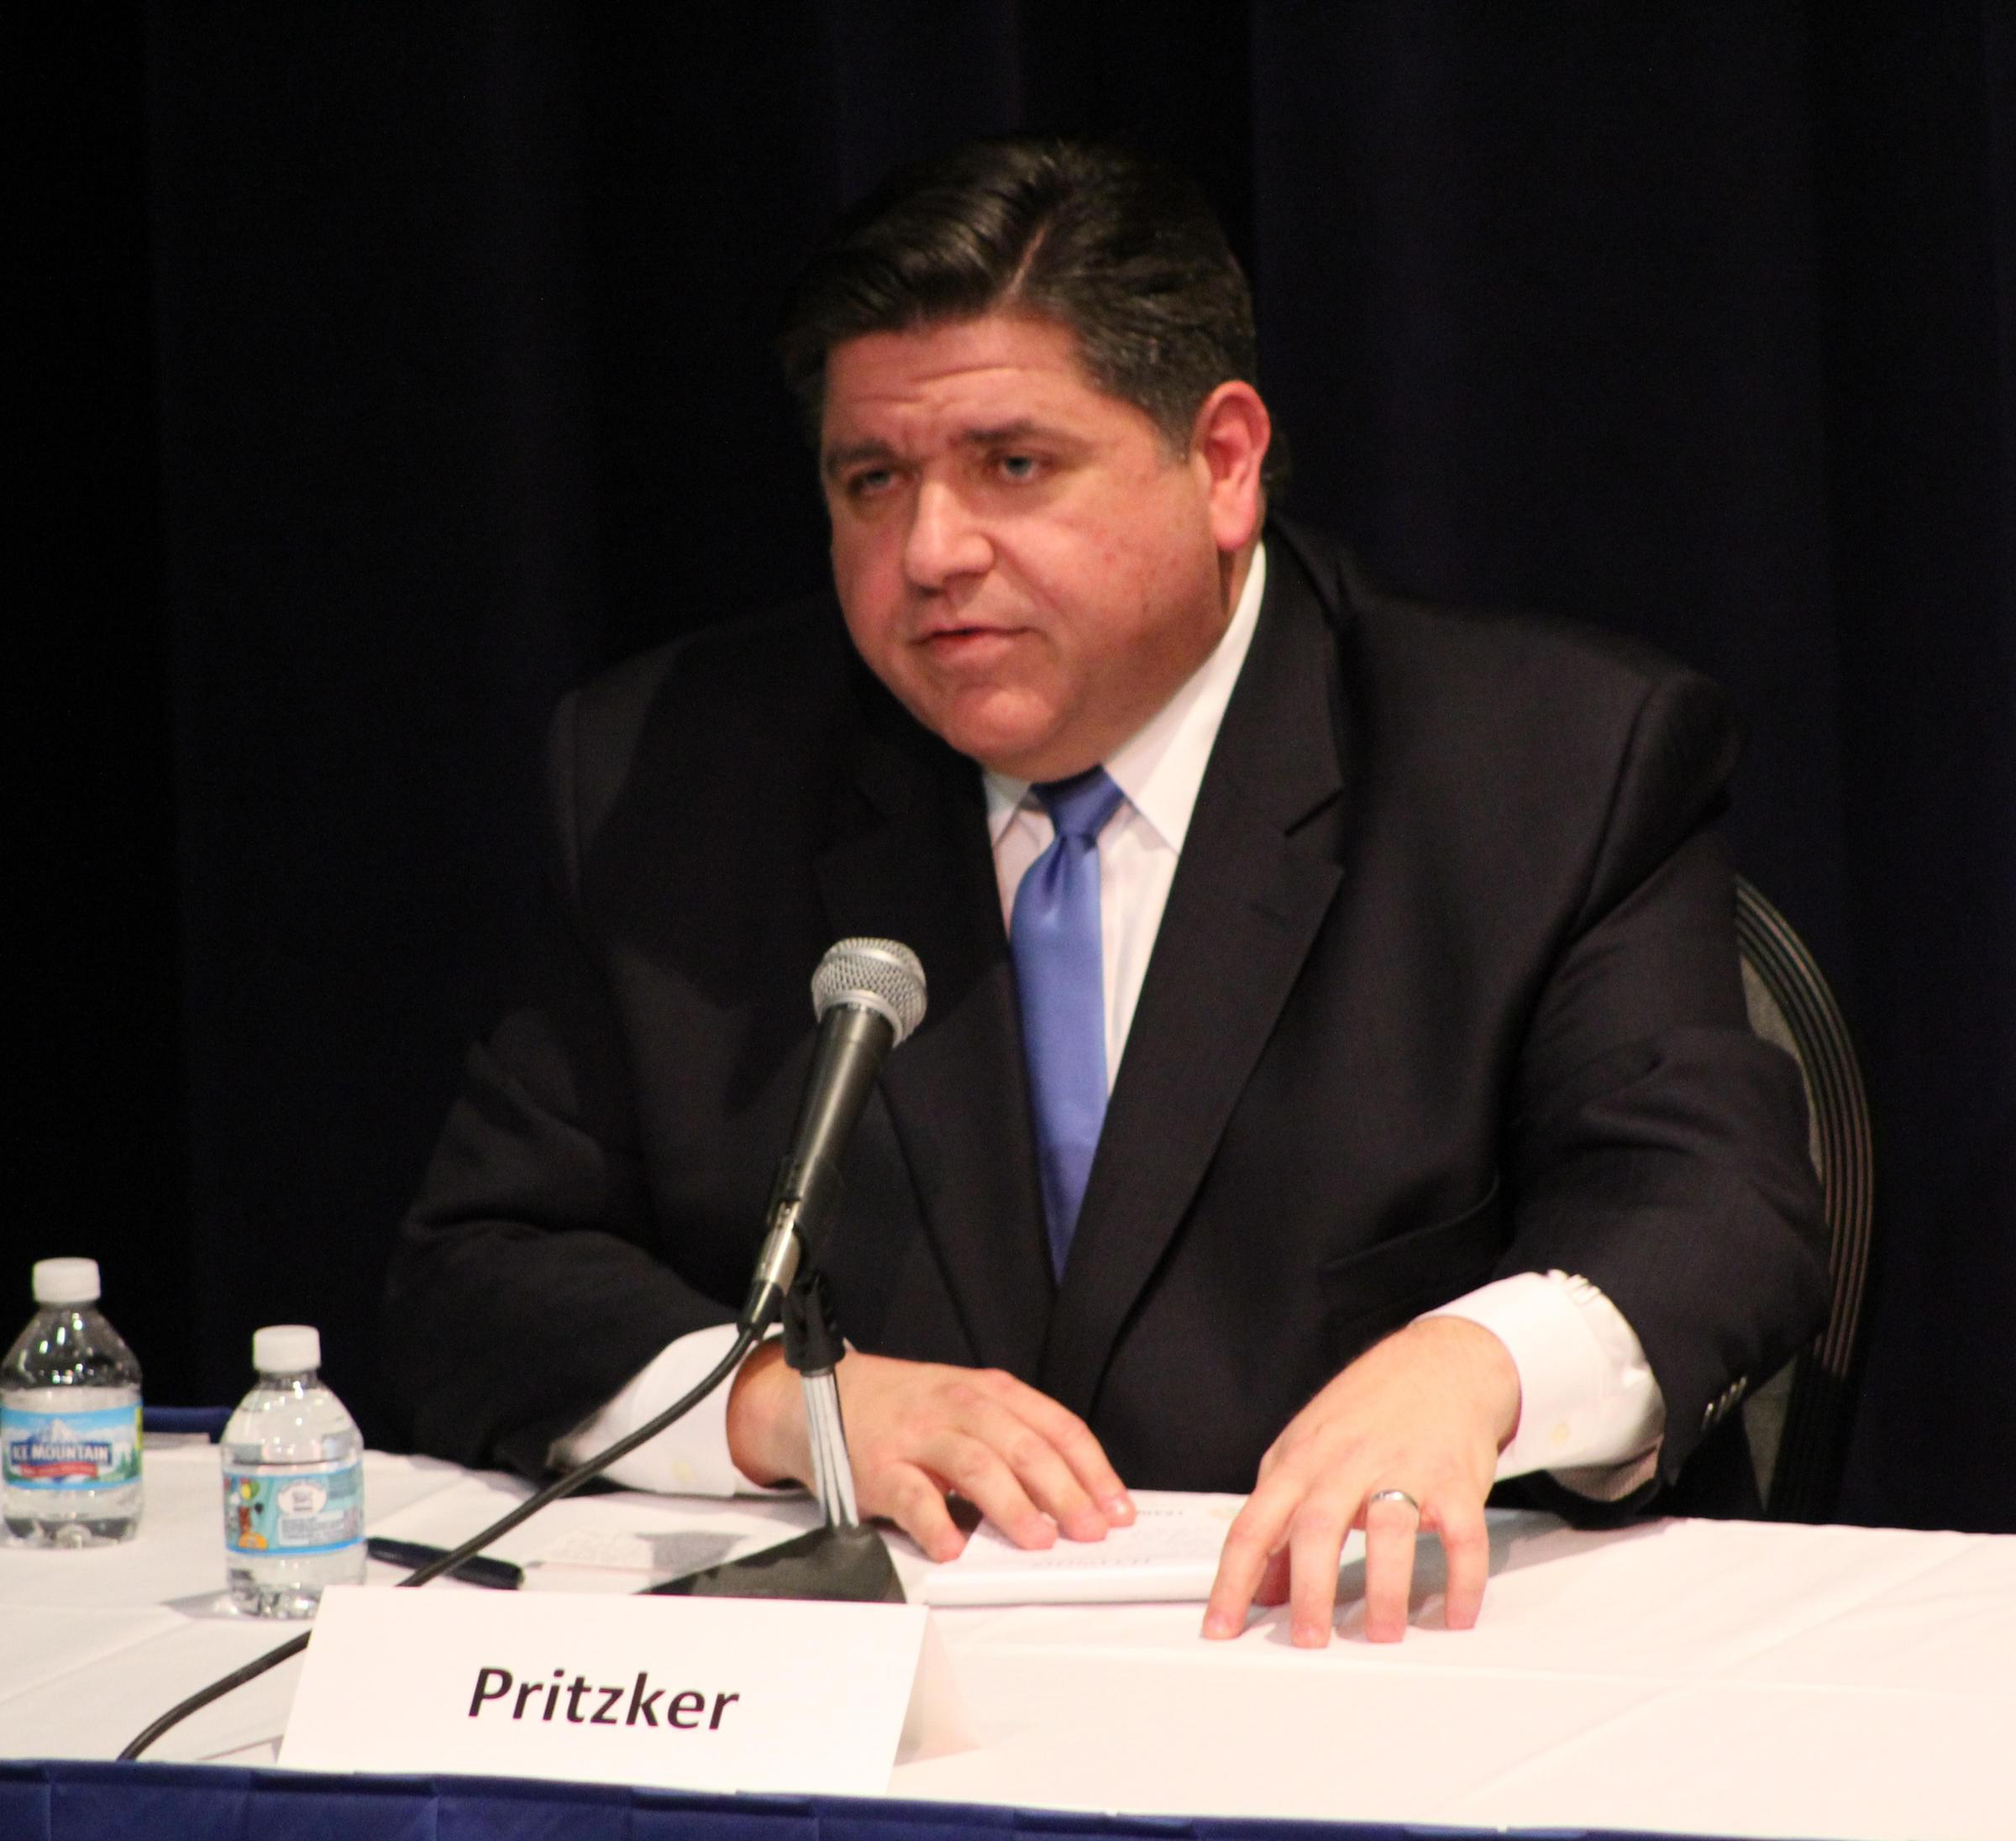 J.B. Pritzker participates in a debate before the Democratic gubernatorial primary, which he would go on to win.